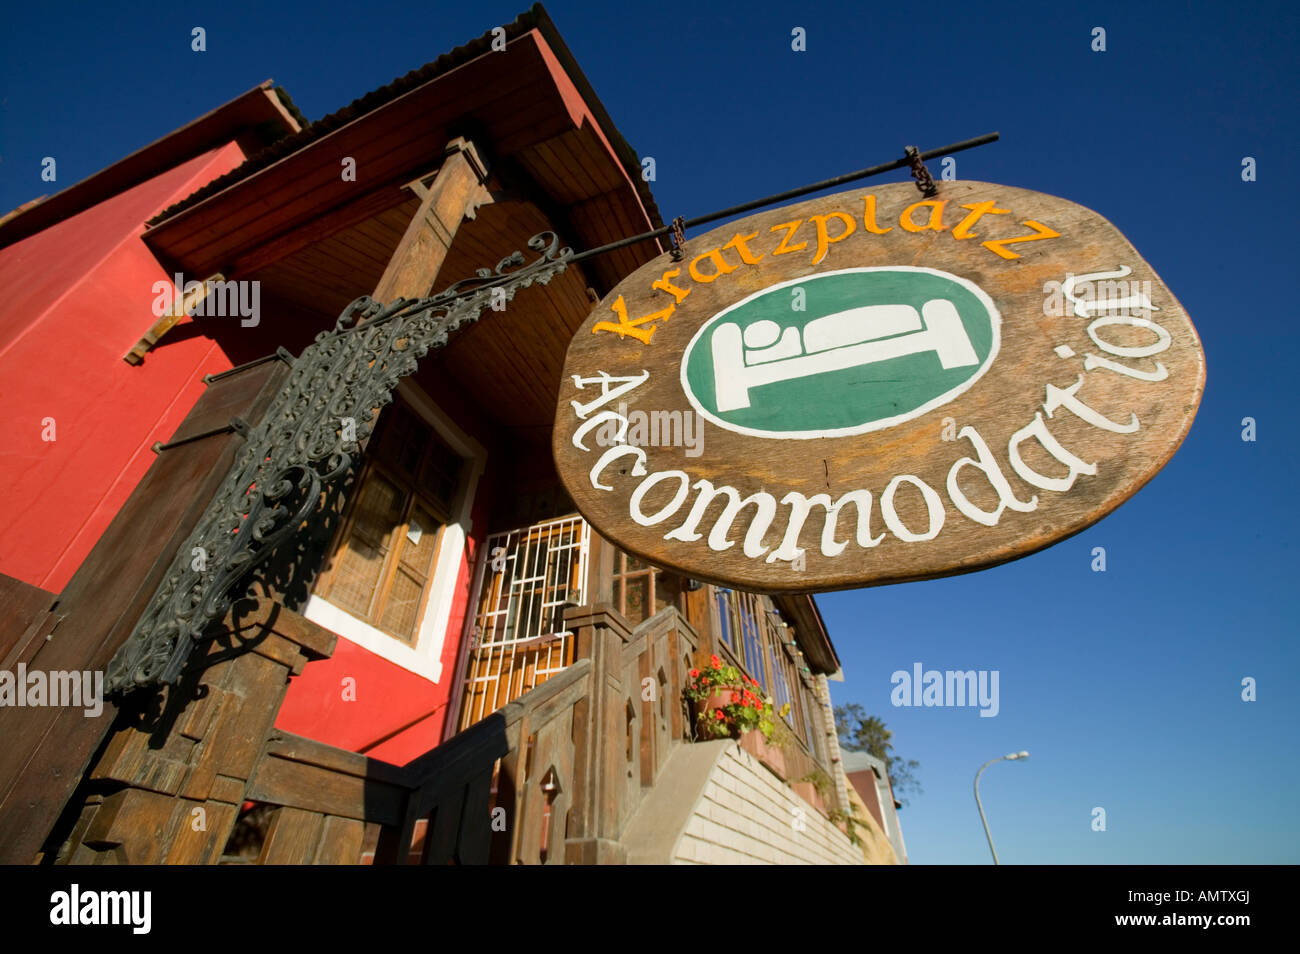 hotel, acommodation, house, Africa, Sudafrica, poster, detail, colors, poster, dreams - Stock Image